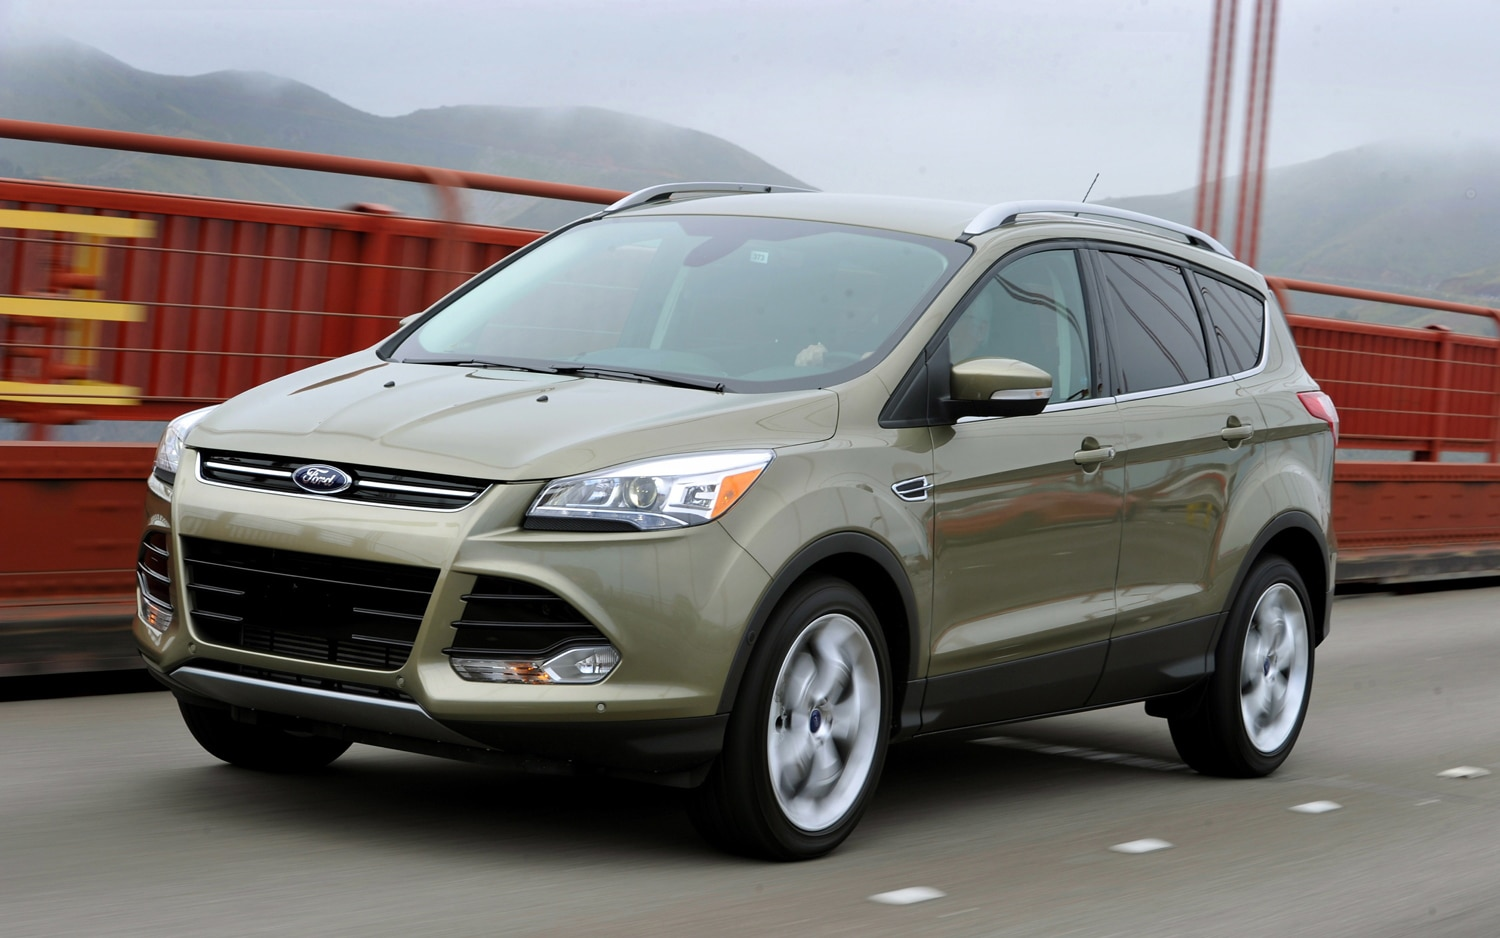 2013 Ford Escape Front Three Quarter1